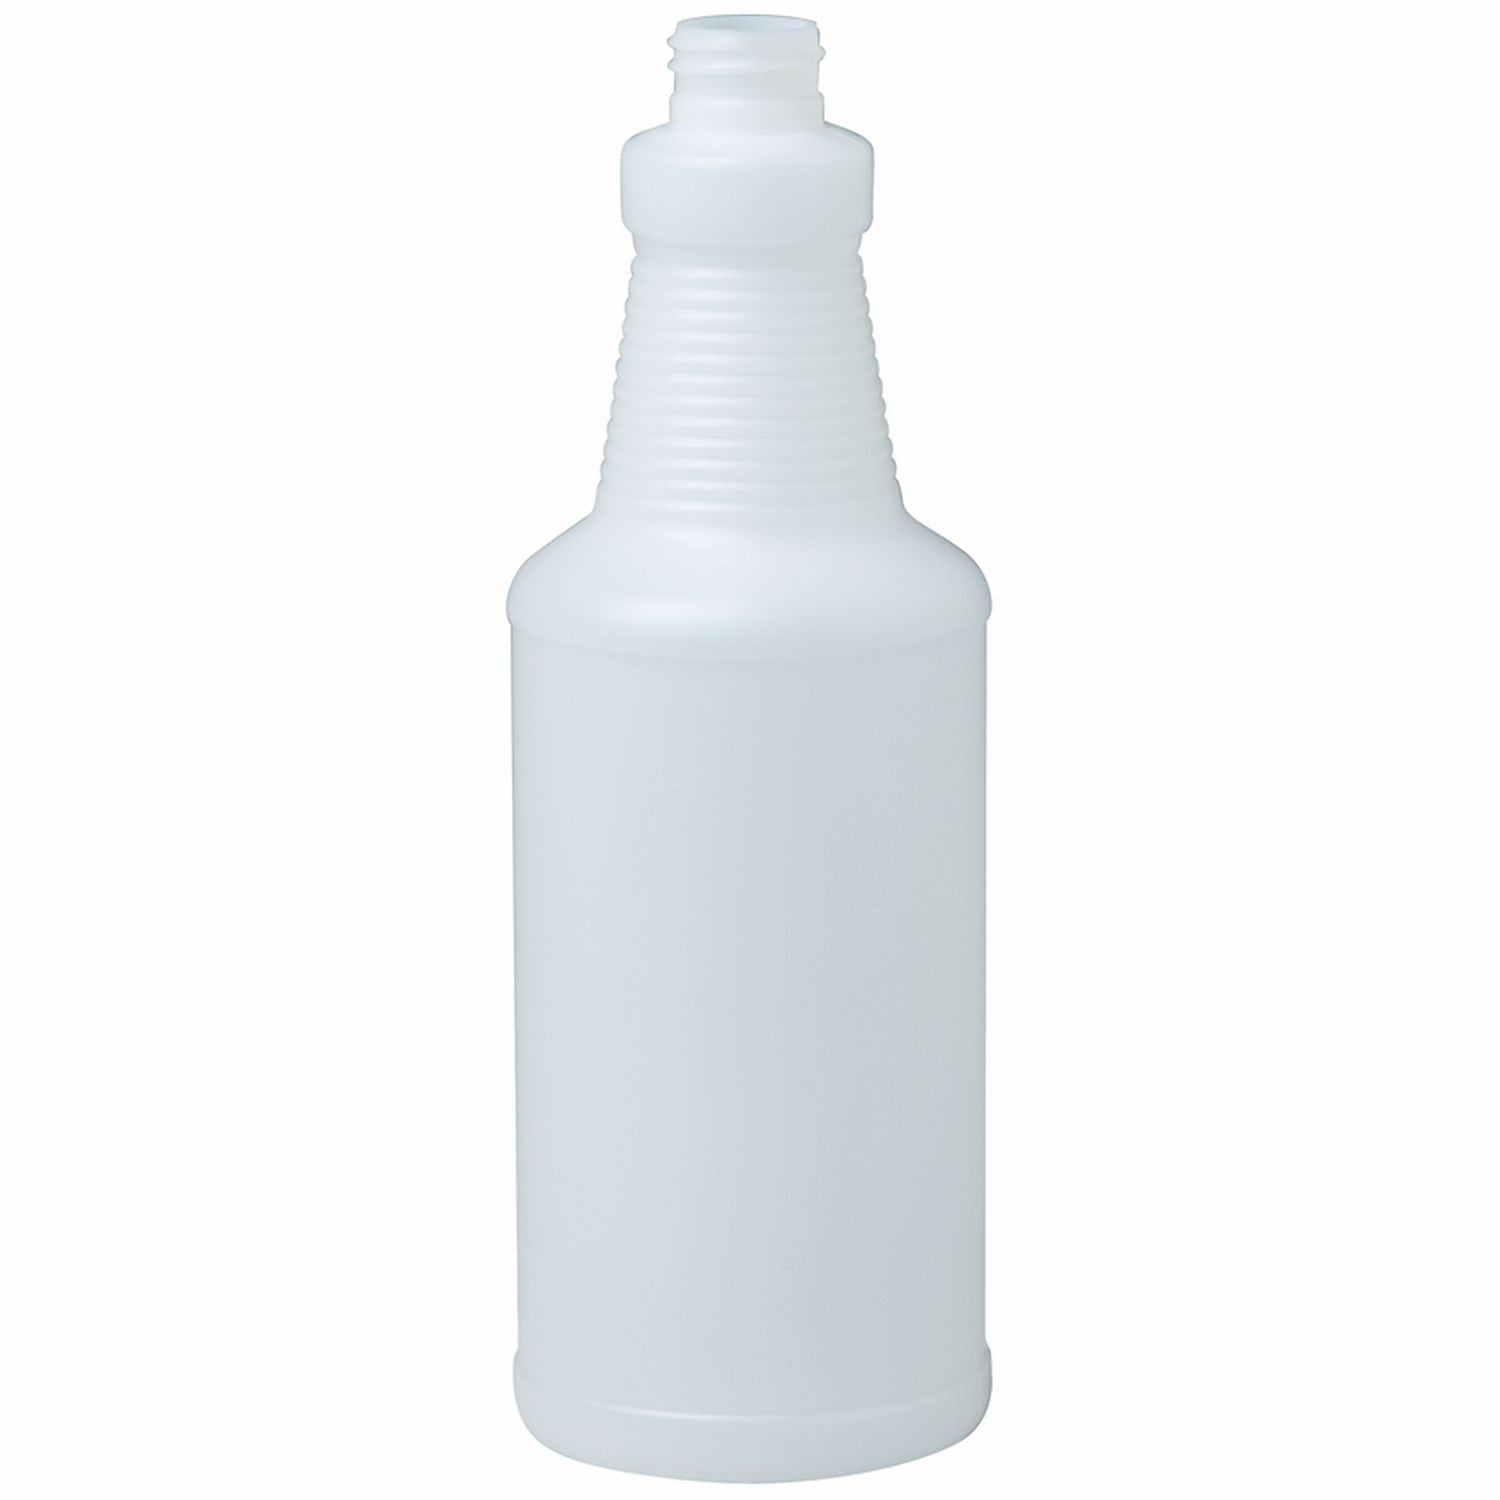 3M Detailing Spray Bottle, 32 fl. Oz.